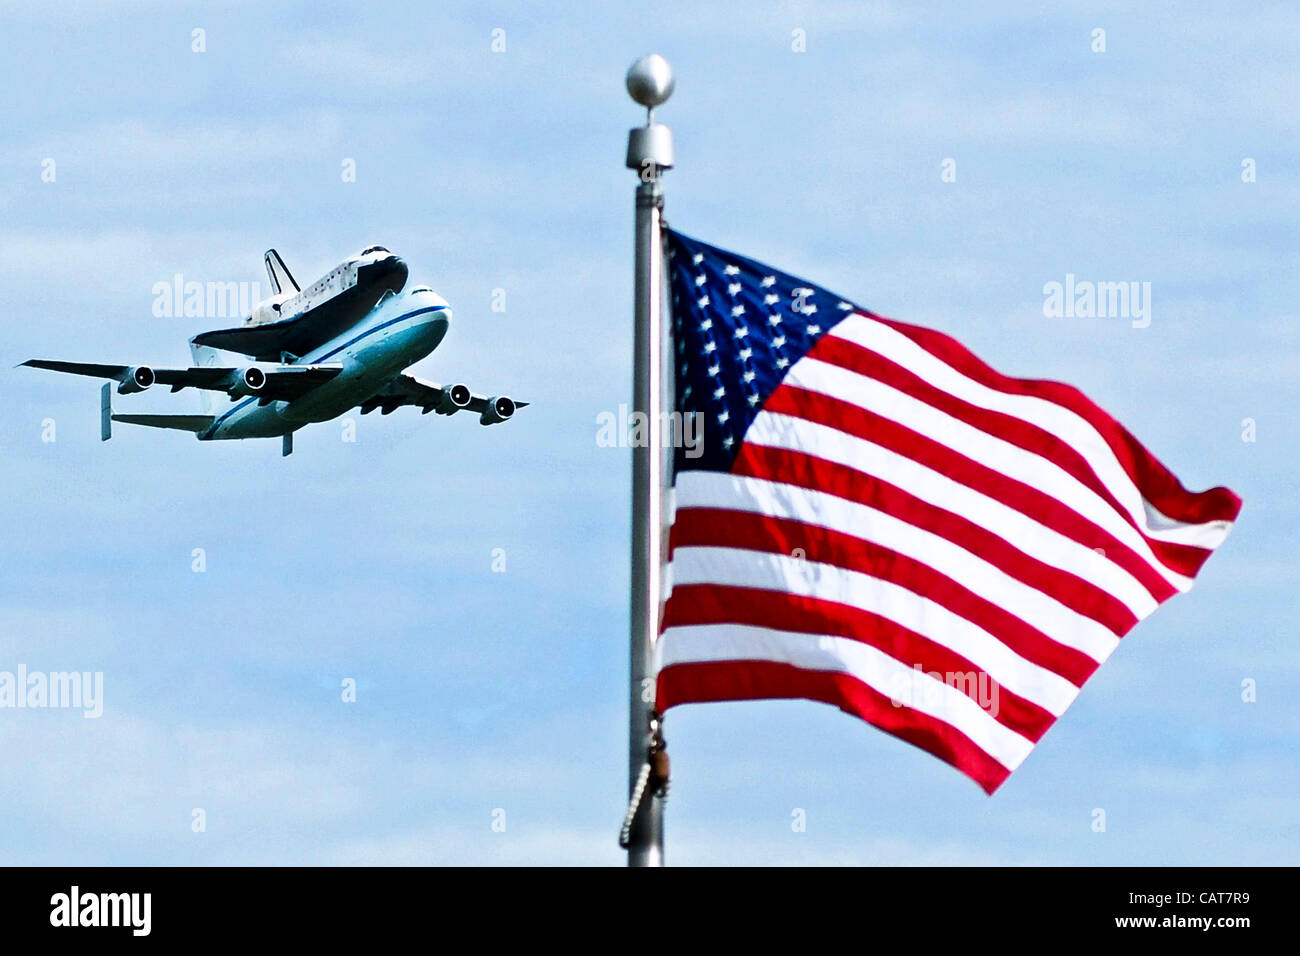 The space shuttle Discovery attached to its 747 transport passes over a US flag during a flyover of the nation's Stock Photo